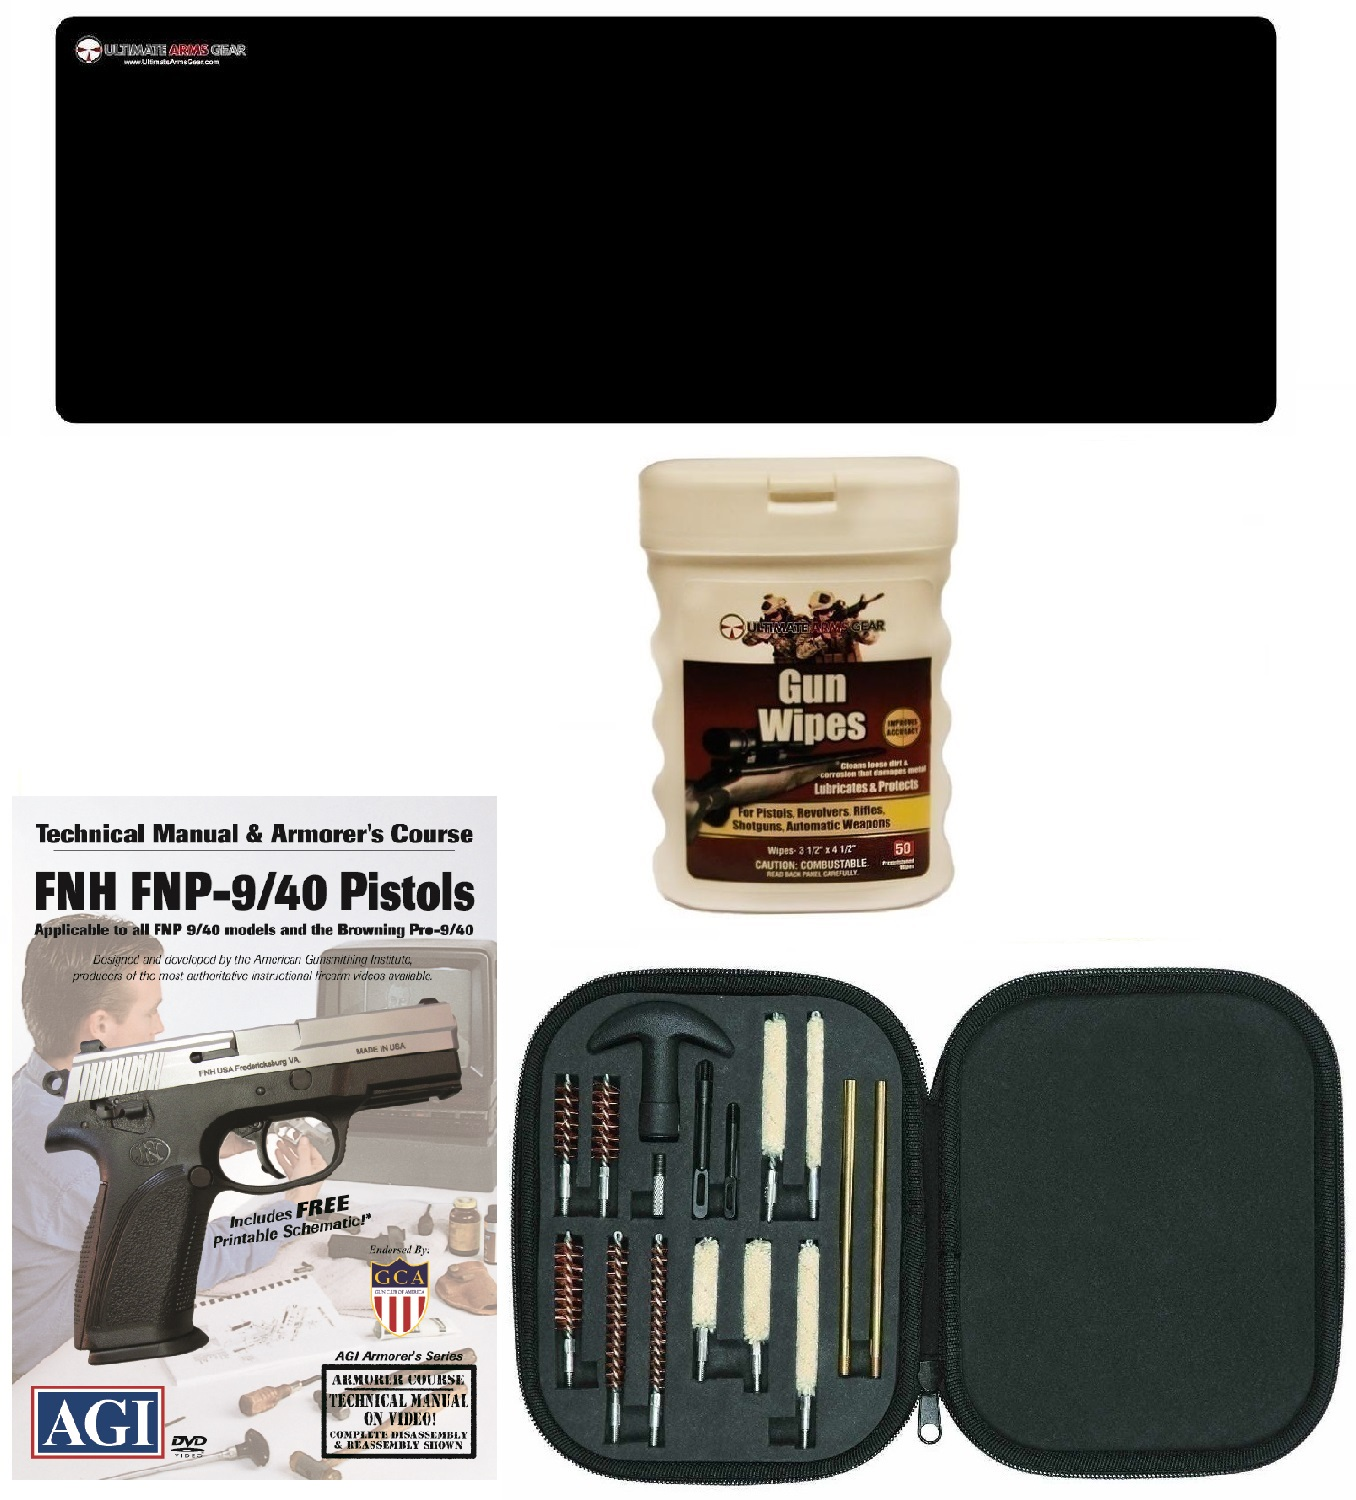 AGI DVD Armorer's Course FNH FNP-9 FN-40 Semi Auto Pistols + Ultimate Arms Gear Gunsmith & Armorer's Cleaning Bench Gun Mat + 17pc Handgun Pistol Cleaning Kit Brushes, Swab, Tips and Patchess + Wipes